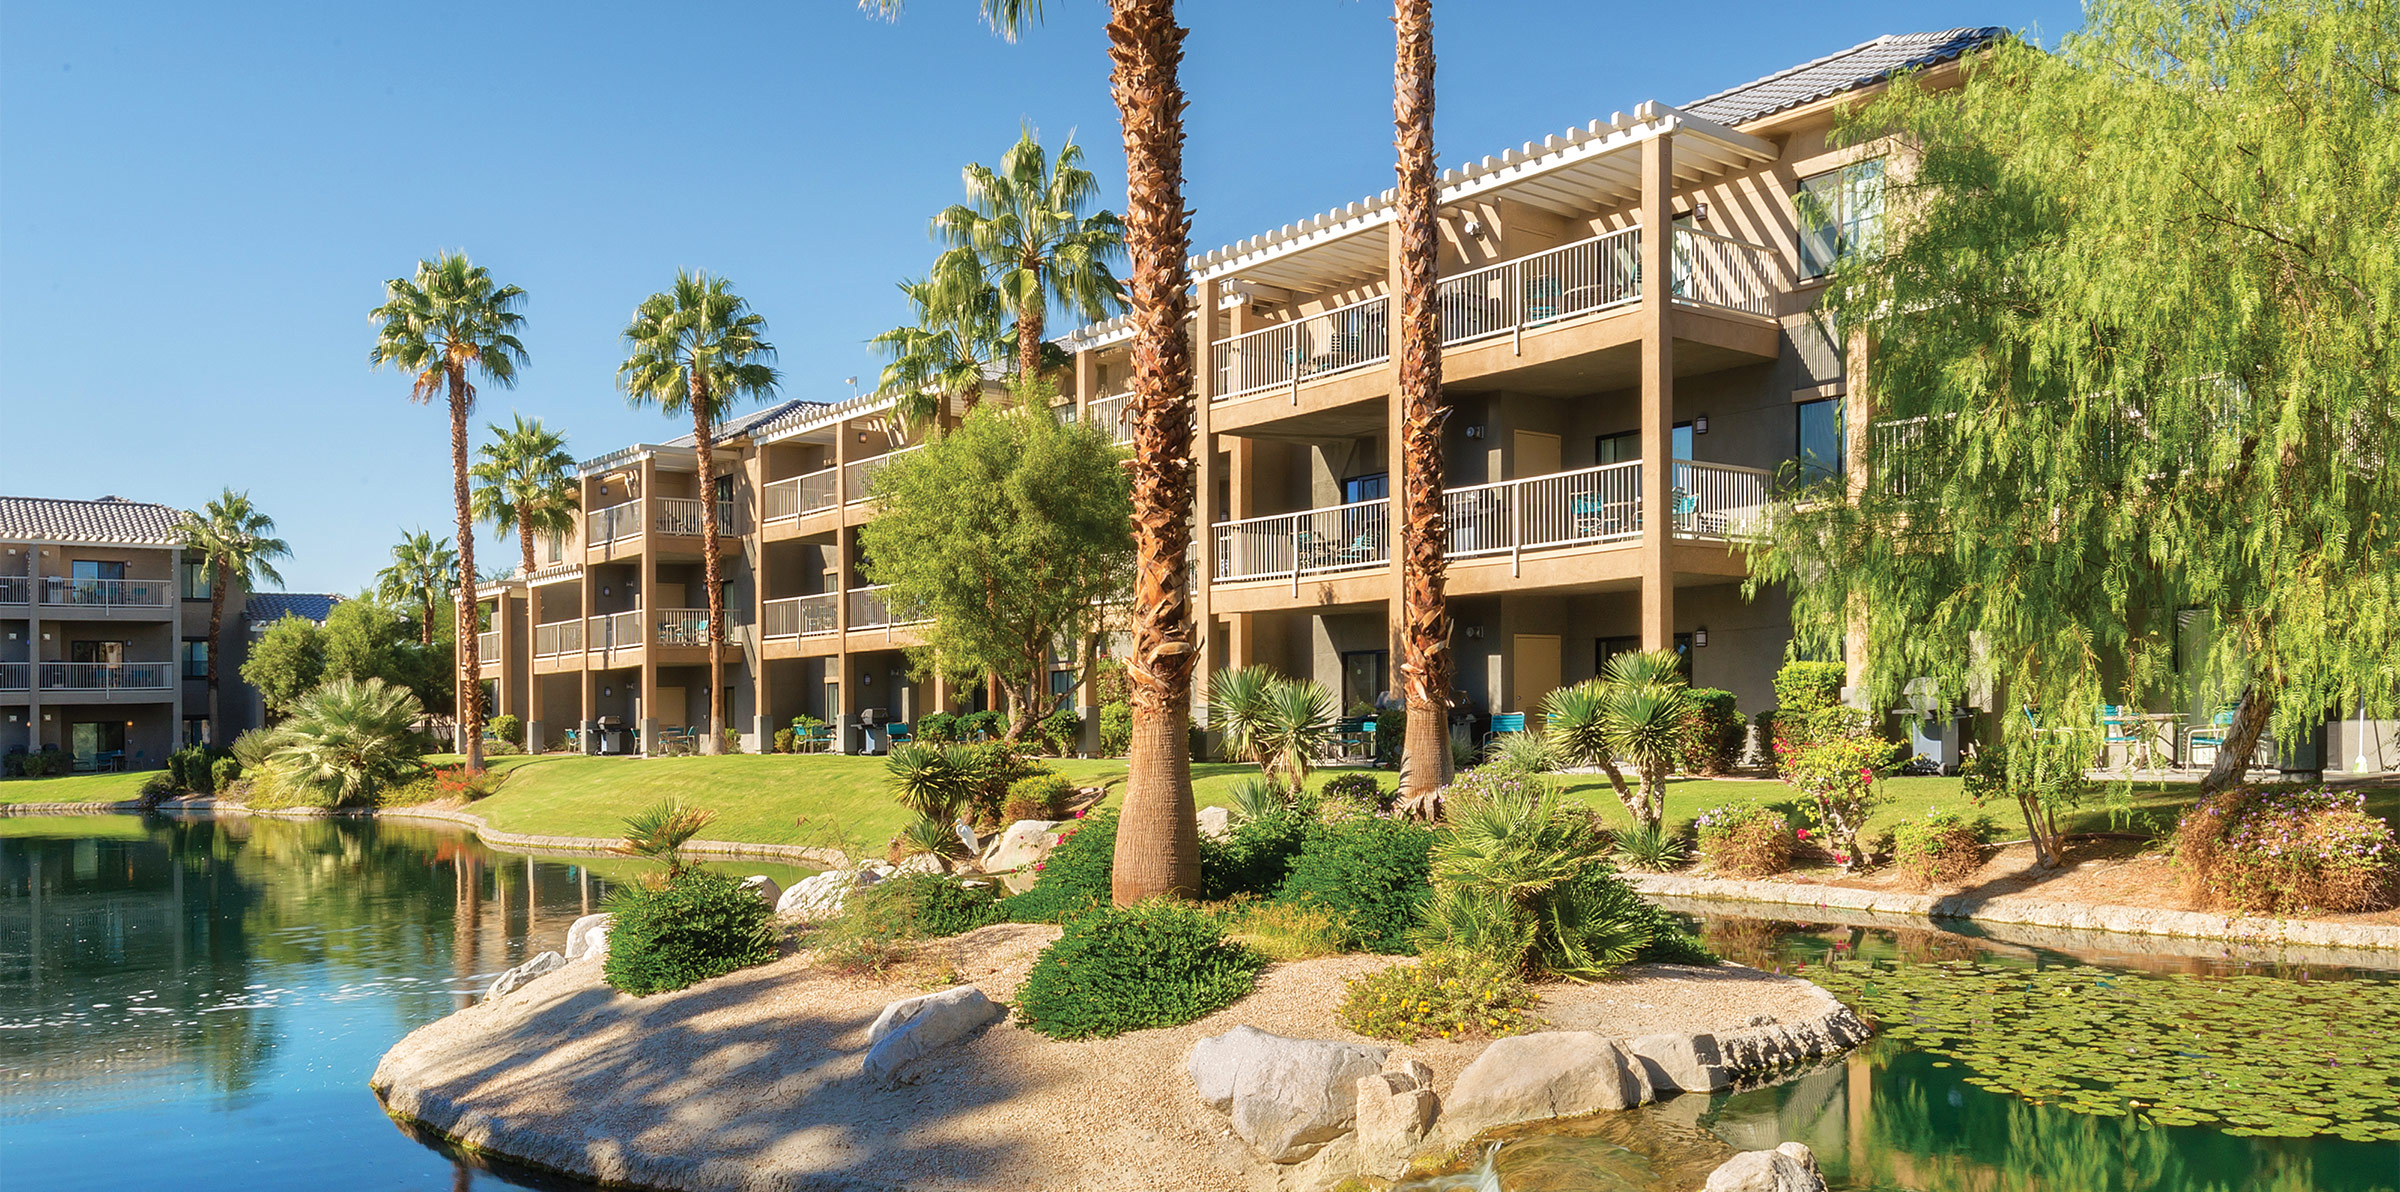 Apartment 1 Bedroom 1 Bath In Indio  CA   Palm Springs  5 miles from COACHELLA photo 20364270